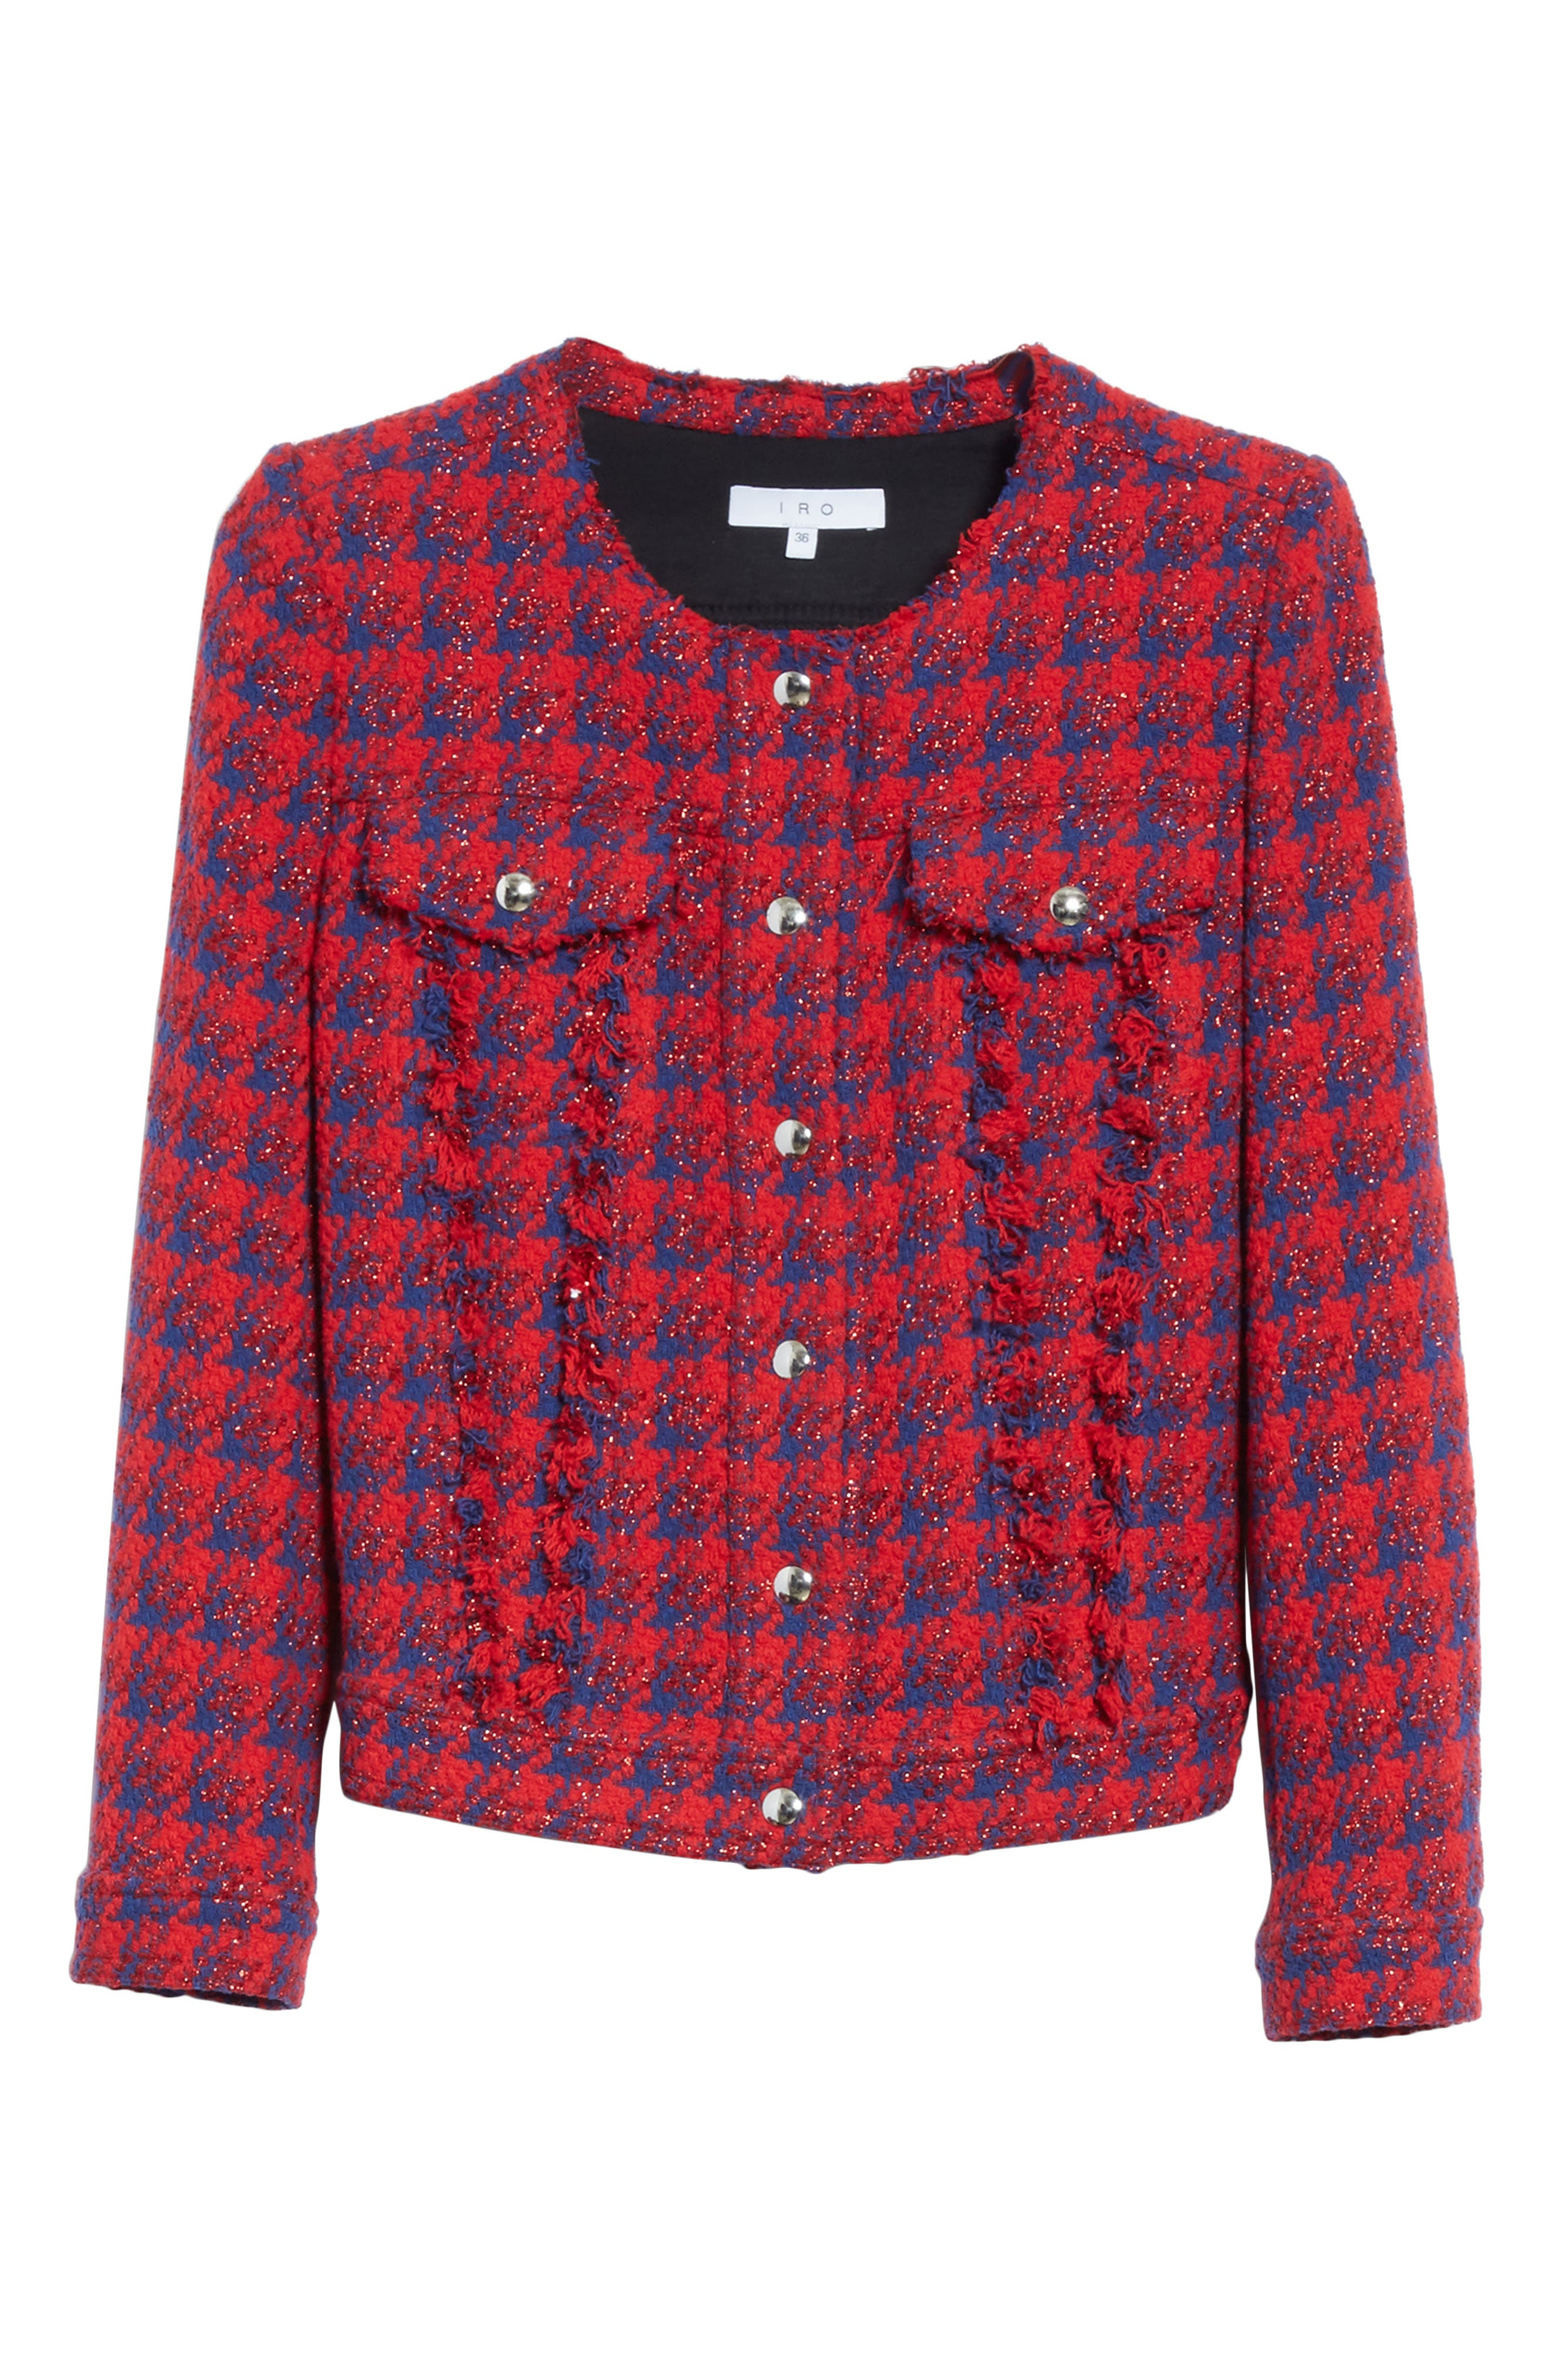 Quilombre Houndstooth Tweed Jacket,                             Alternate thumbnail 6, color,                             Red/ Blue